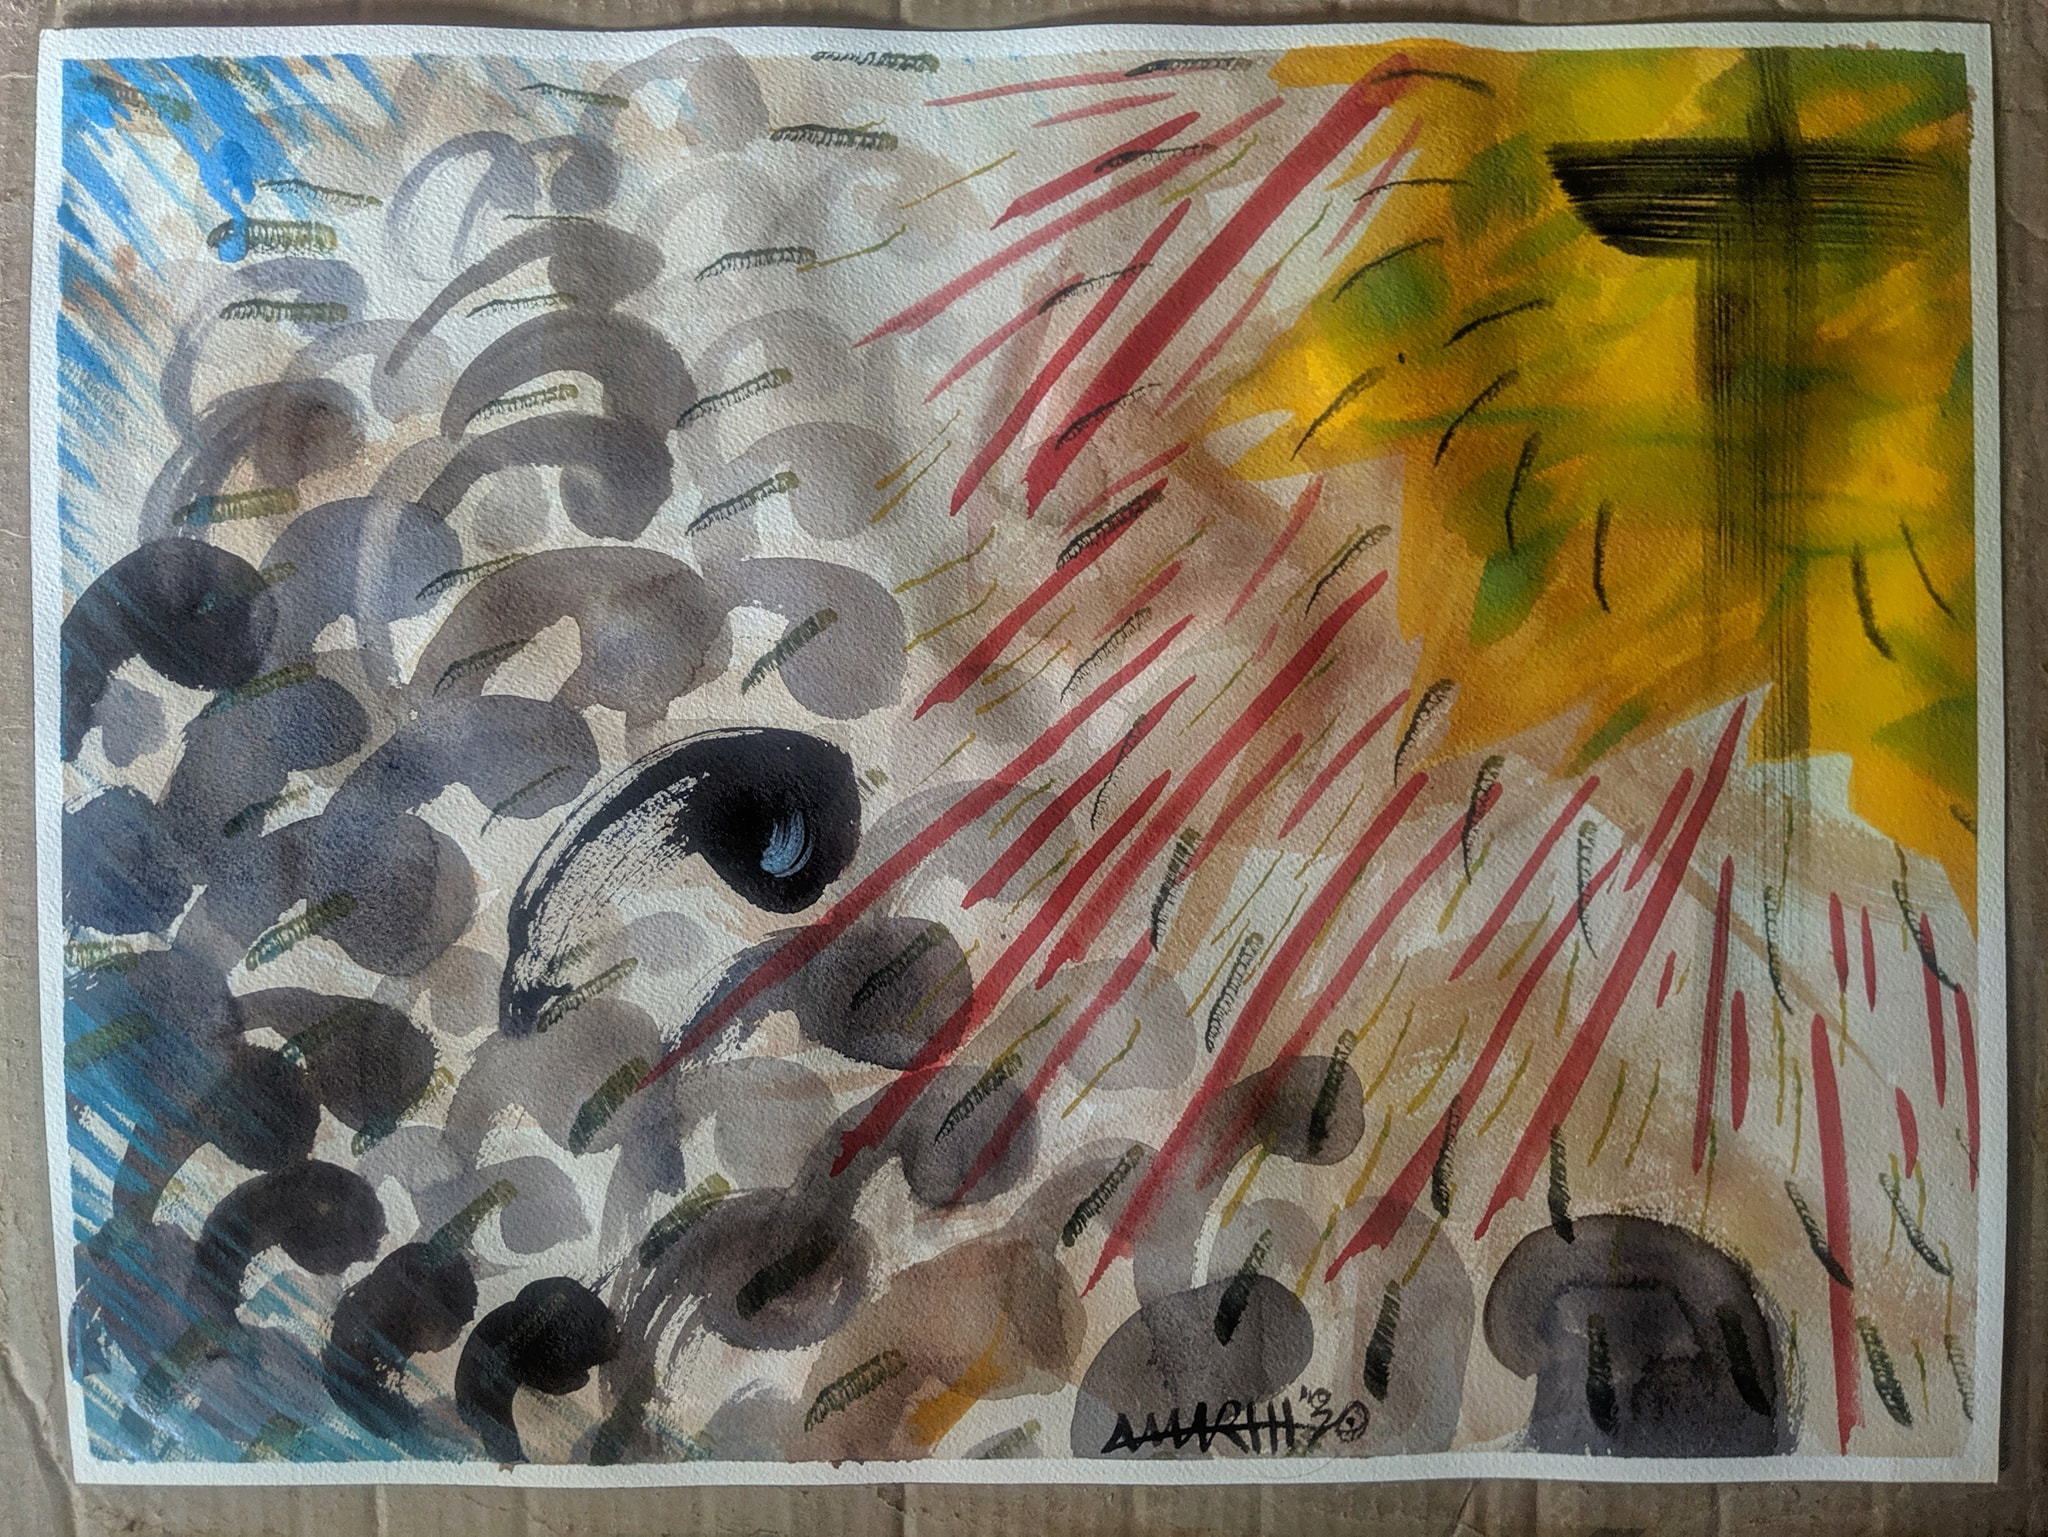 """no. 16 - Ota, Ogun State, Nigeria (quarantine paintings, 2020)  watercolor, oil, gesso on arches paper, 18×24″  dedicated for Dr. Alfa Sa Adu 1952 - 3/31/2020   """"COVID-19: The conflict between staying at home and """"Re-opening"""" is a difficult but ultimately false choice. Re-opening now is a big risk. As I said to my son, if we were in a conventional war and bombs were dropping, would you pretend all is normal? Or is it because this is a virus?"""" -Kingsley Moghalu   """"Shutting down churches would be like shutting down hospitals."""" -David Oyedepo"""